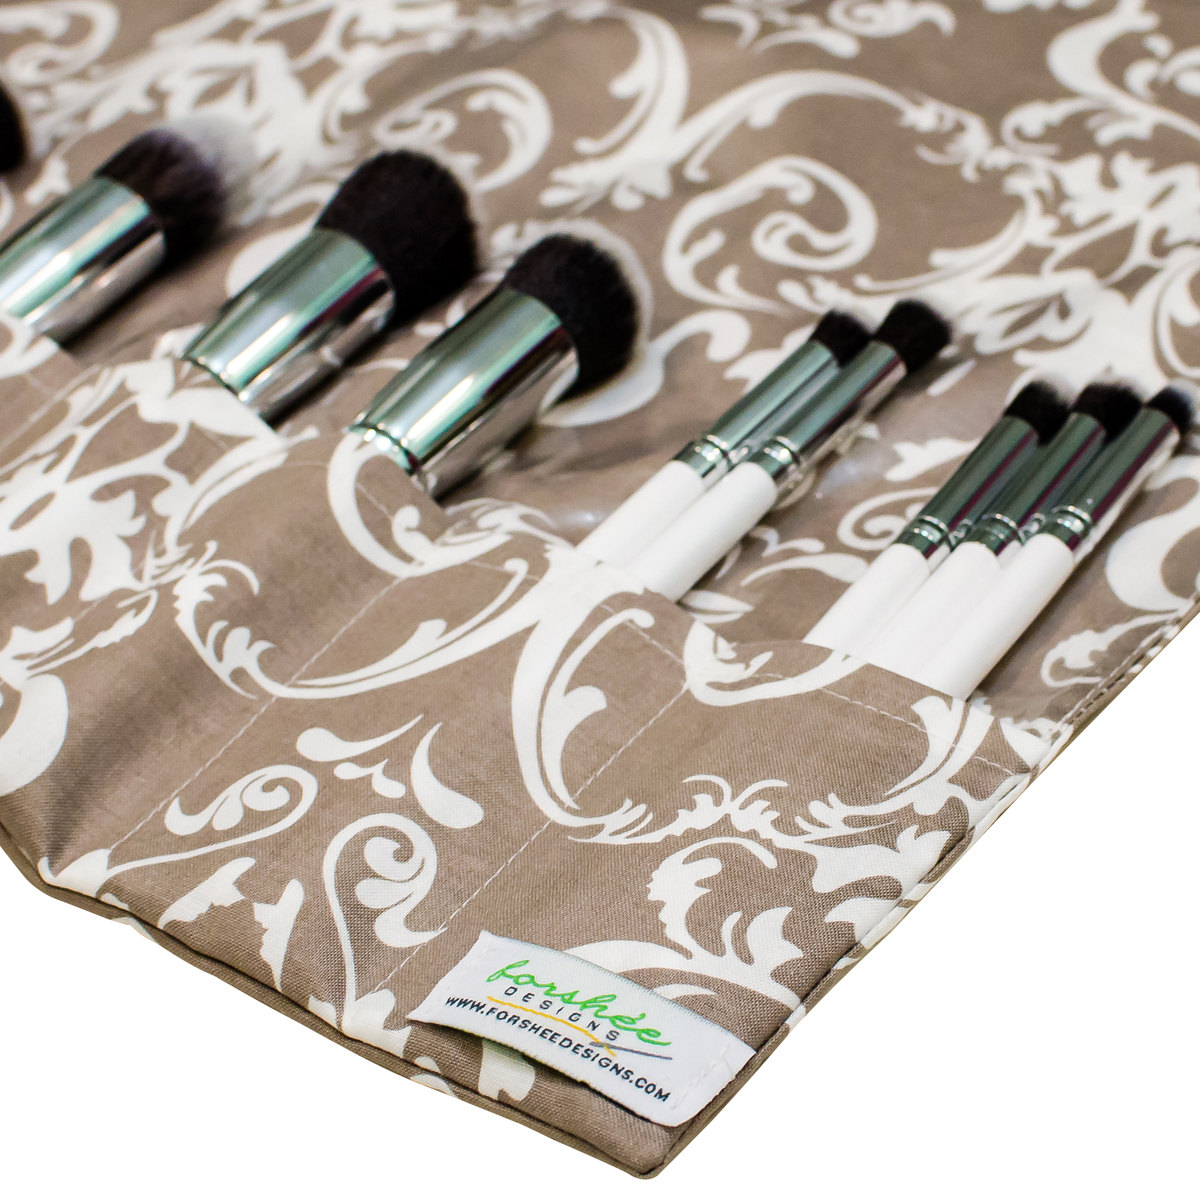 brush roll | gifts bridesmaids travel | https://emmalinebride.com/gifts/gifts-bridesmaids-travel